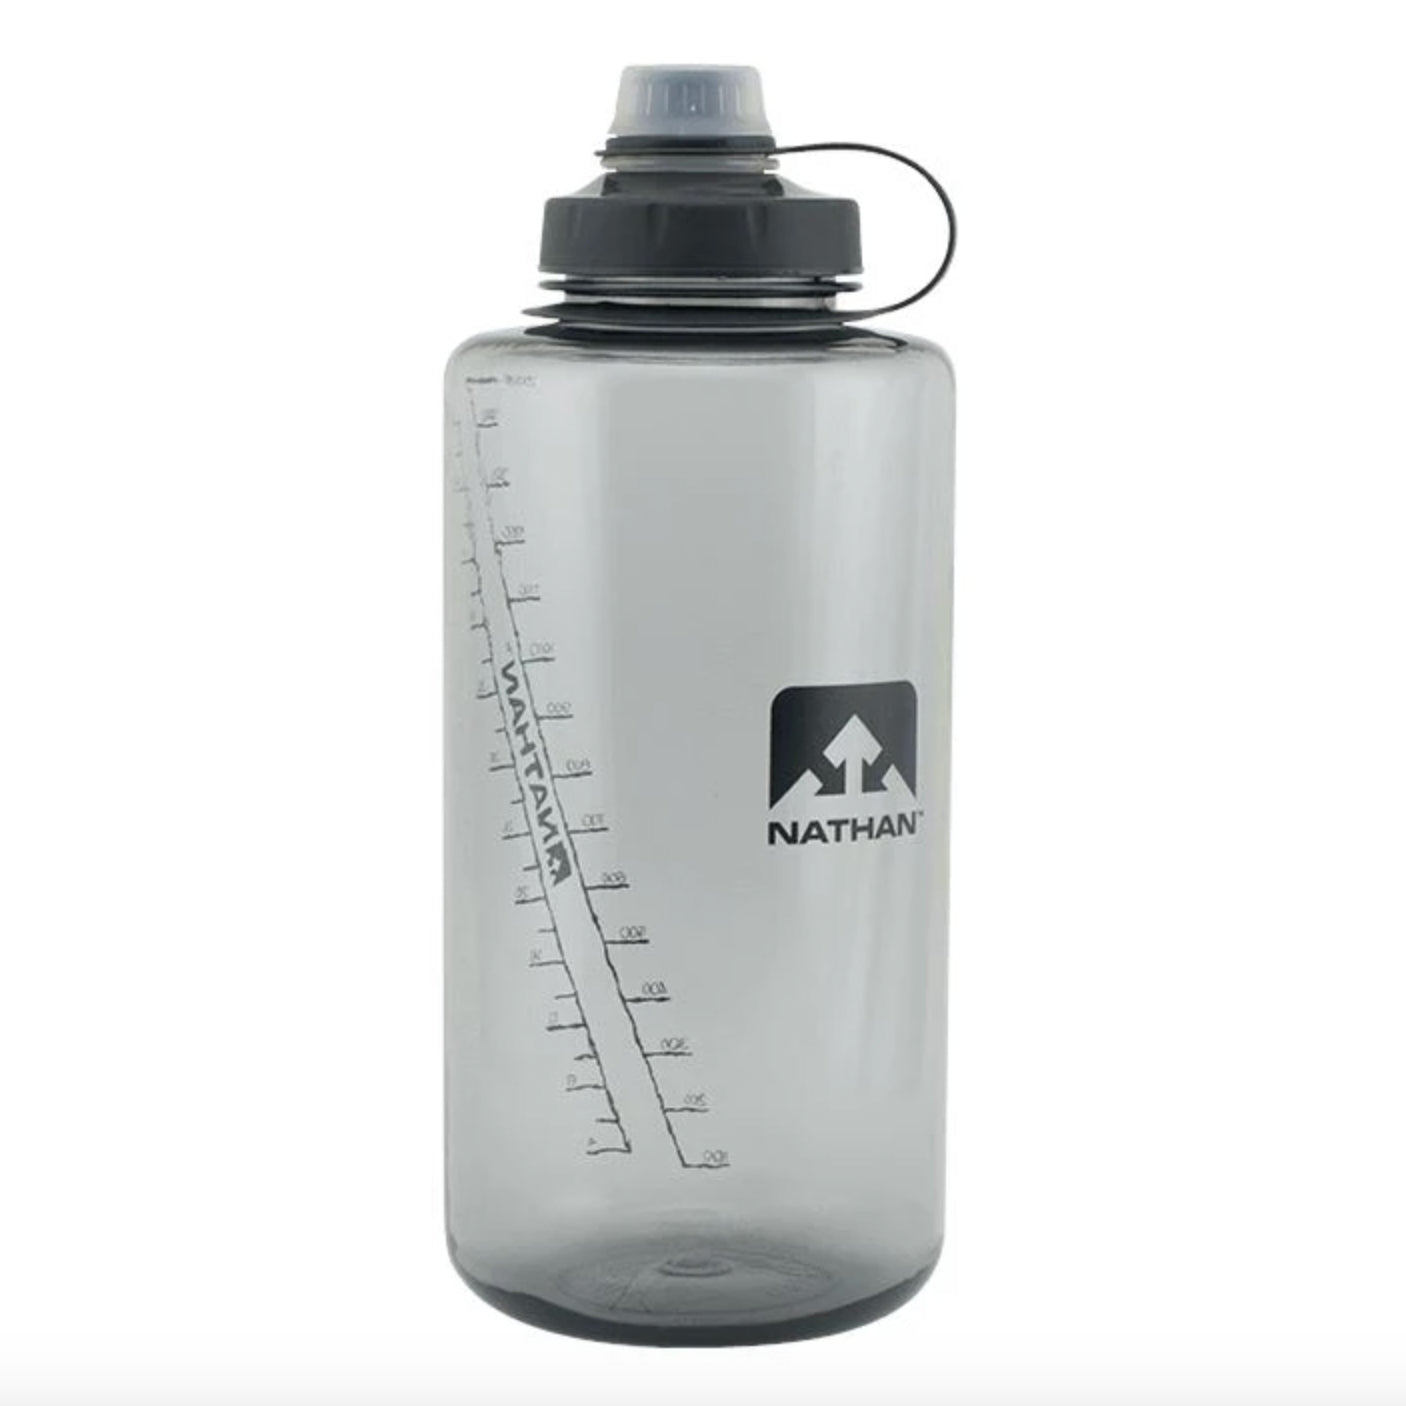 supershot 1.5L hydration bottle in grey